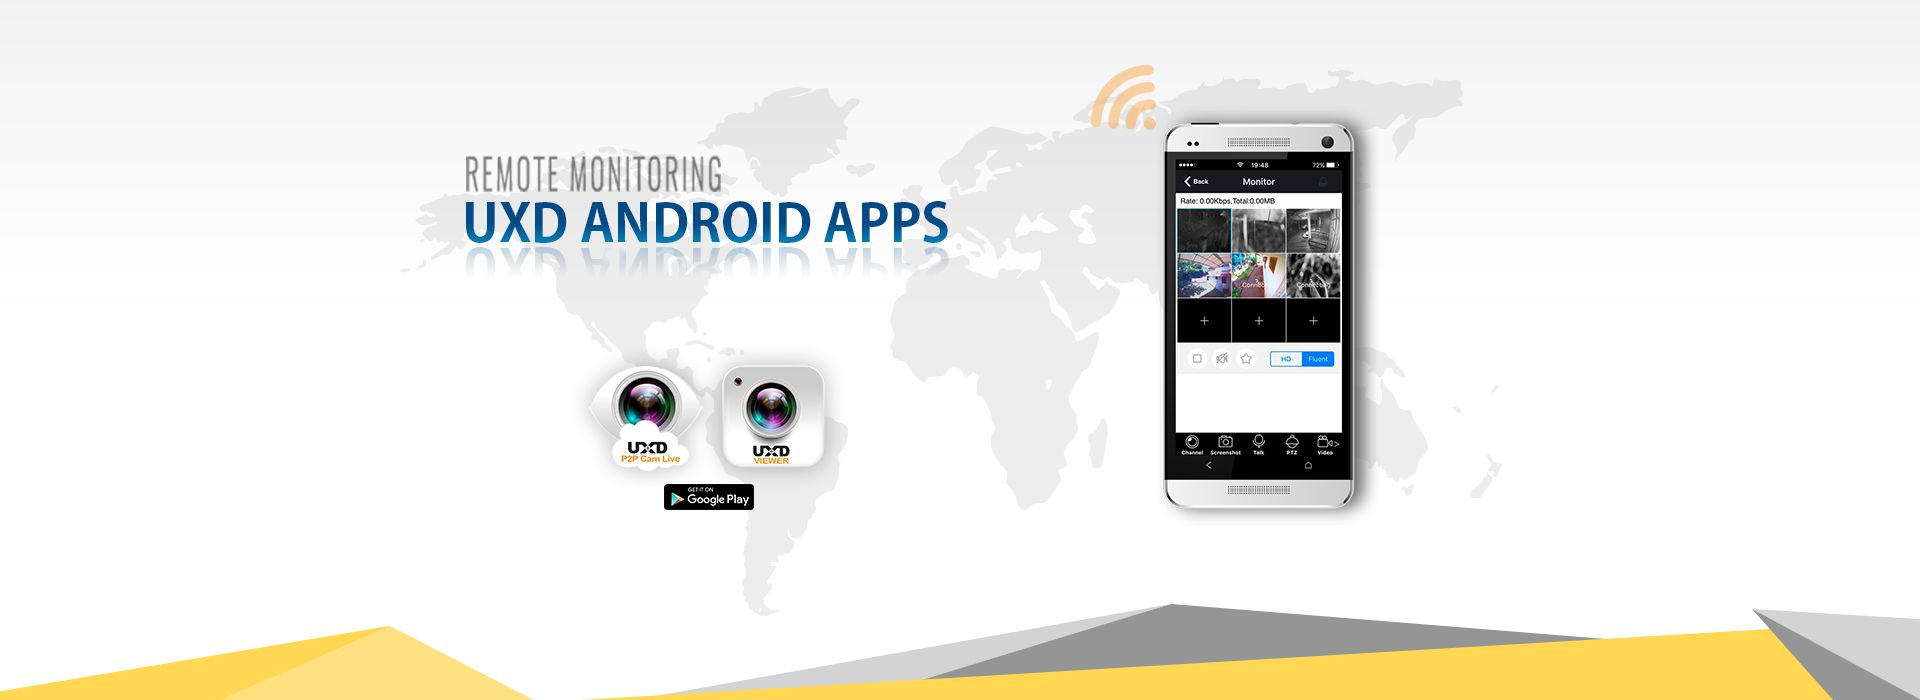 Remote Monitioring, Android App : UXD Viewer, UXD P2P Cam